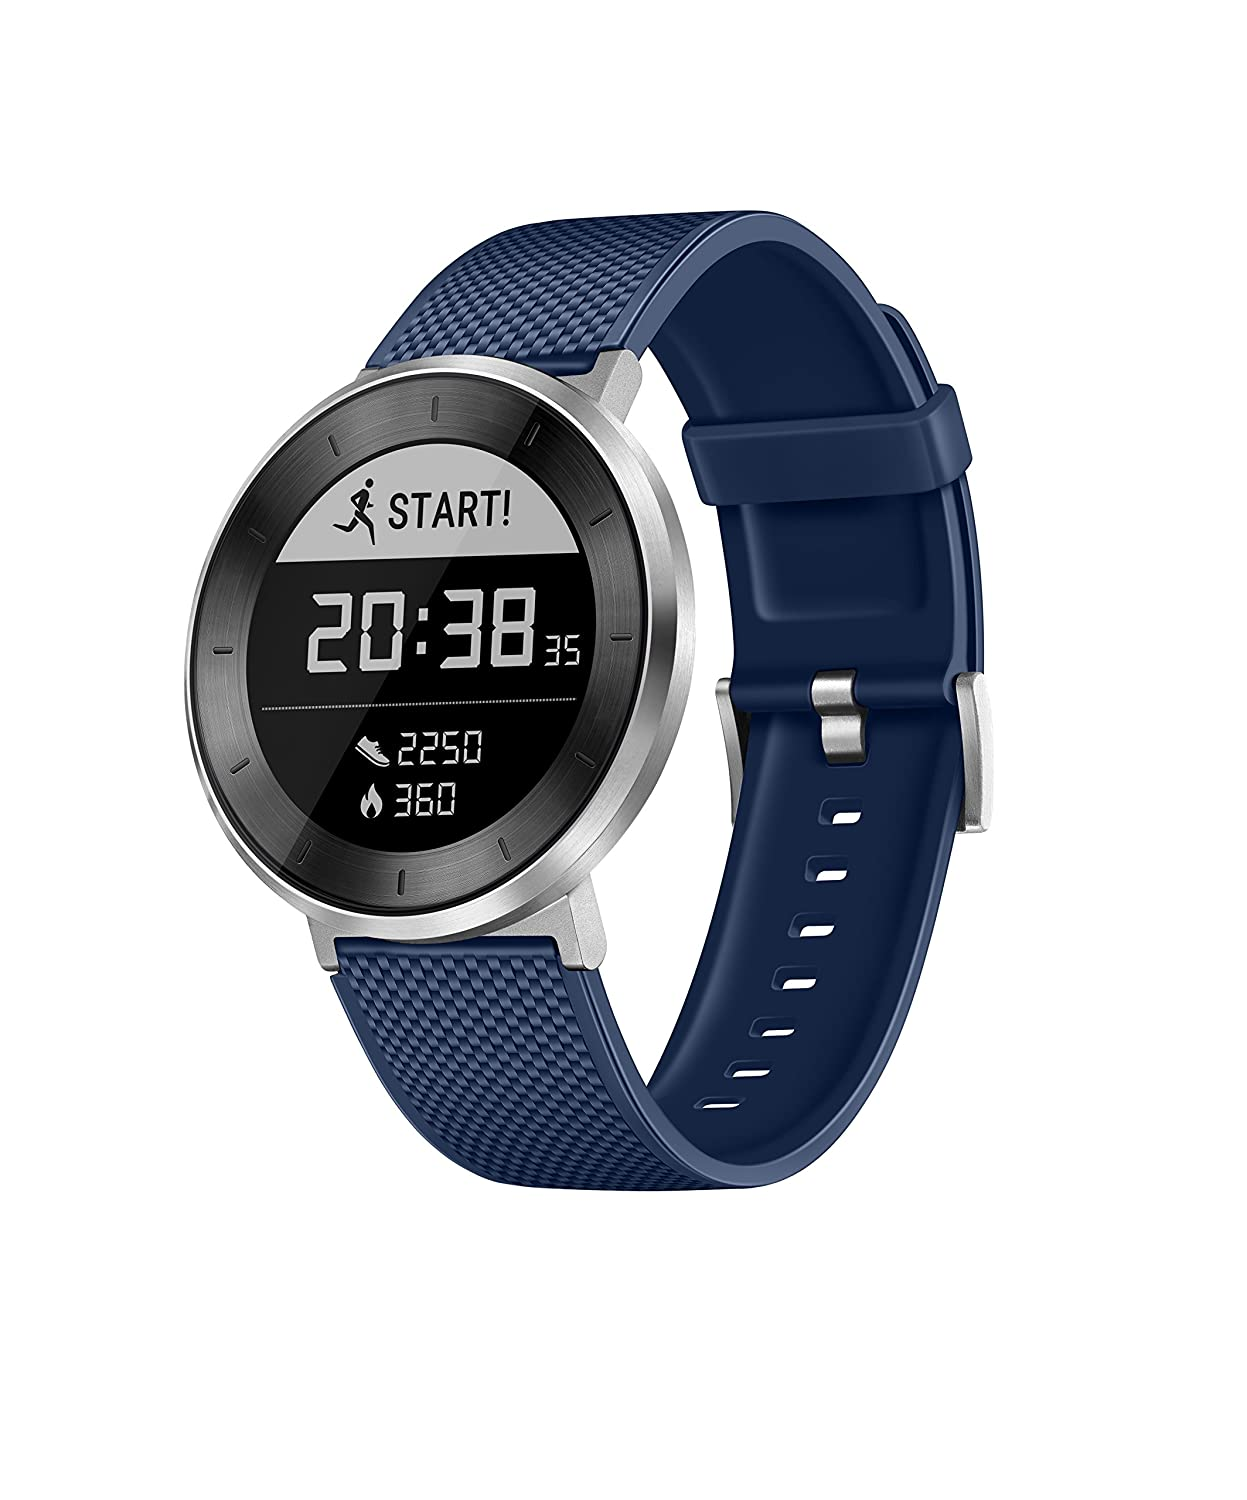 new water fitness resistant shot reveals evan smartband offline samsungs s at samsung blass image support workout watches screen venturebeat pro spotify gear leak